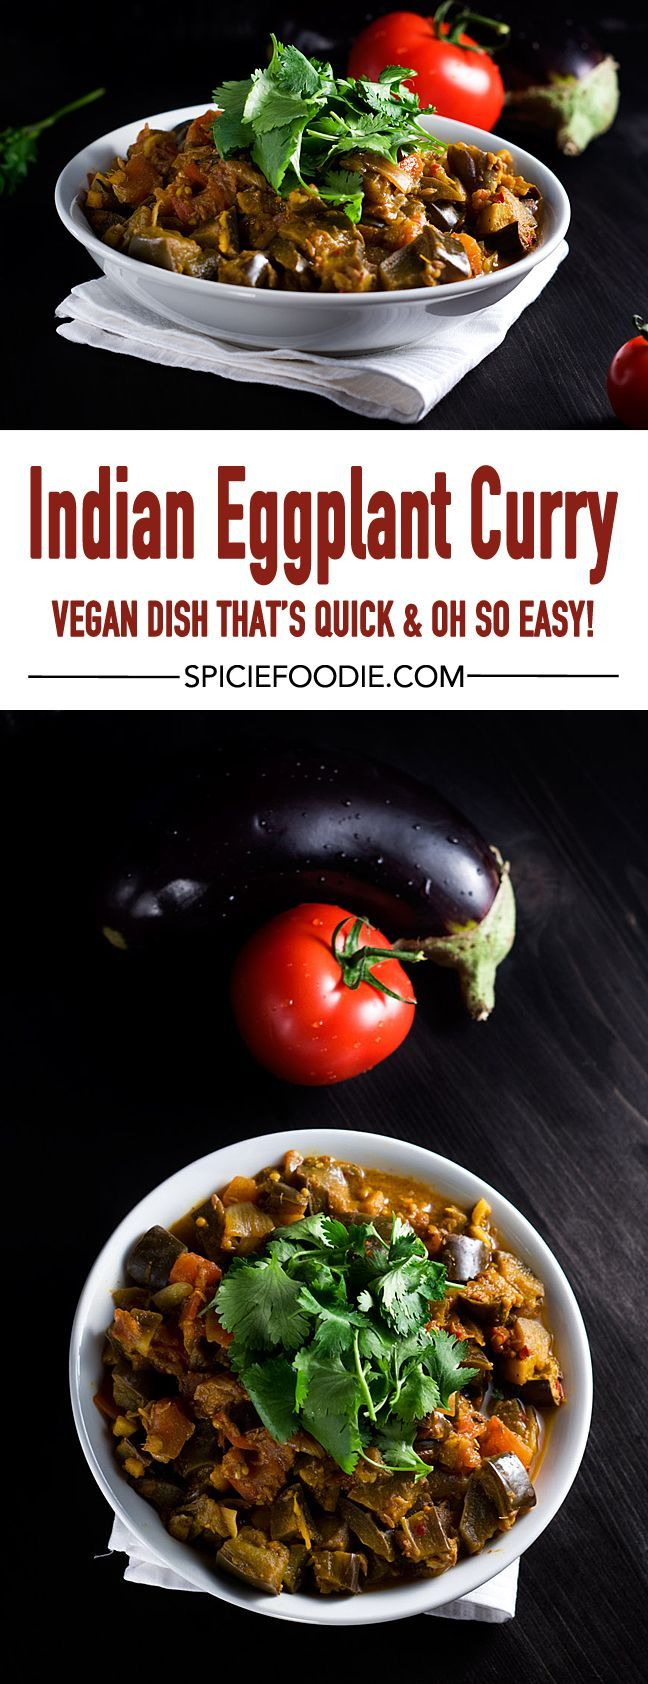 Indian eggplant curry this simplified recipe takes less time to indian eggplant curry this simplified recipe takes less time to prepare than the traditional one healthy indian recipesvegetarian indian foodsvegetarian forumfinder Image collections